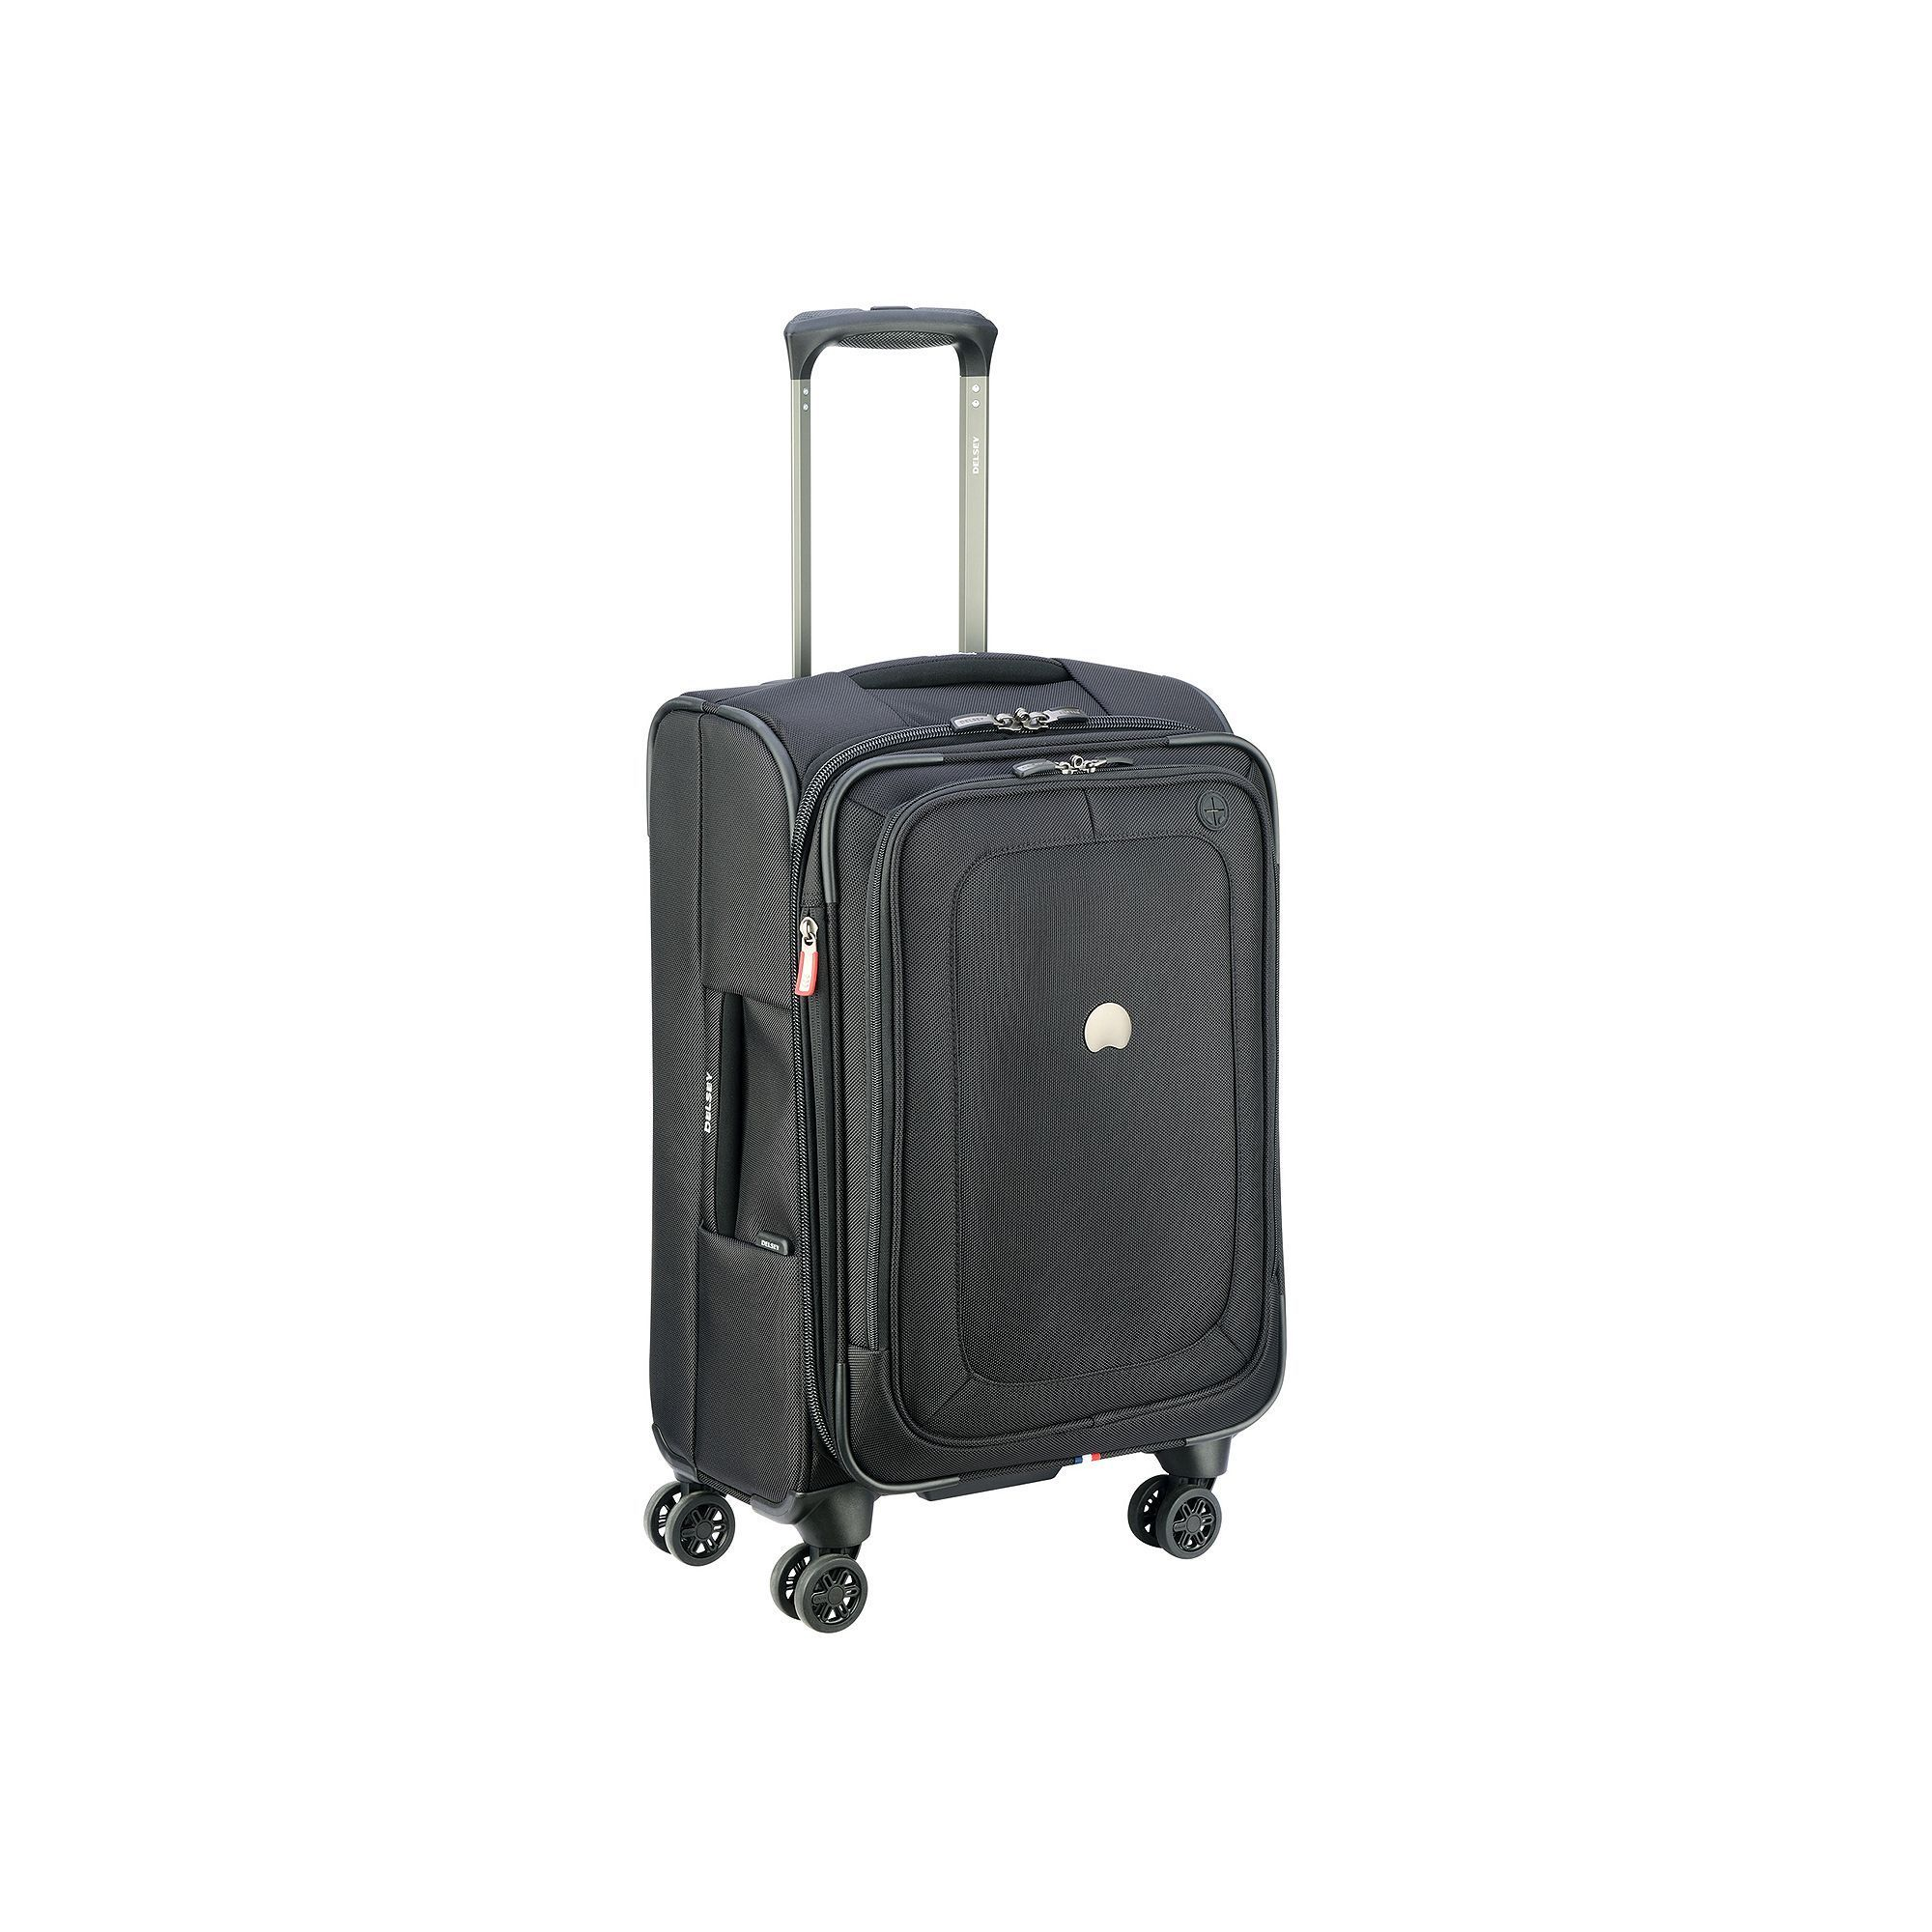 Delsey Cruise Lite 21-Inch Spinner Carry-On Luggage, Black